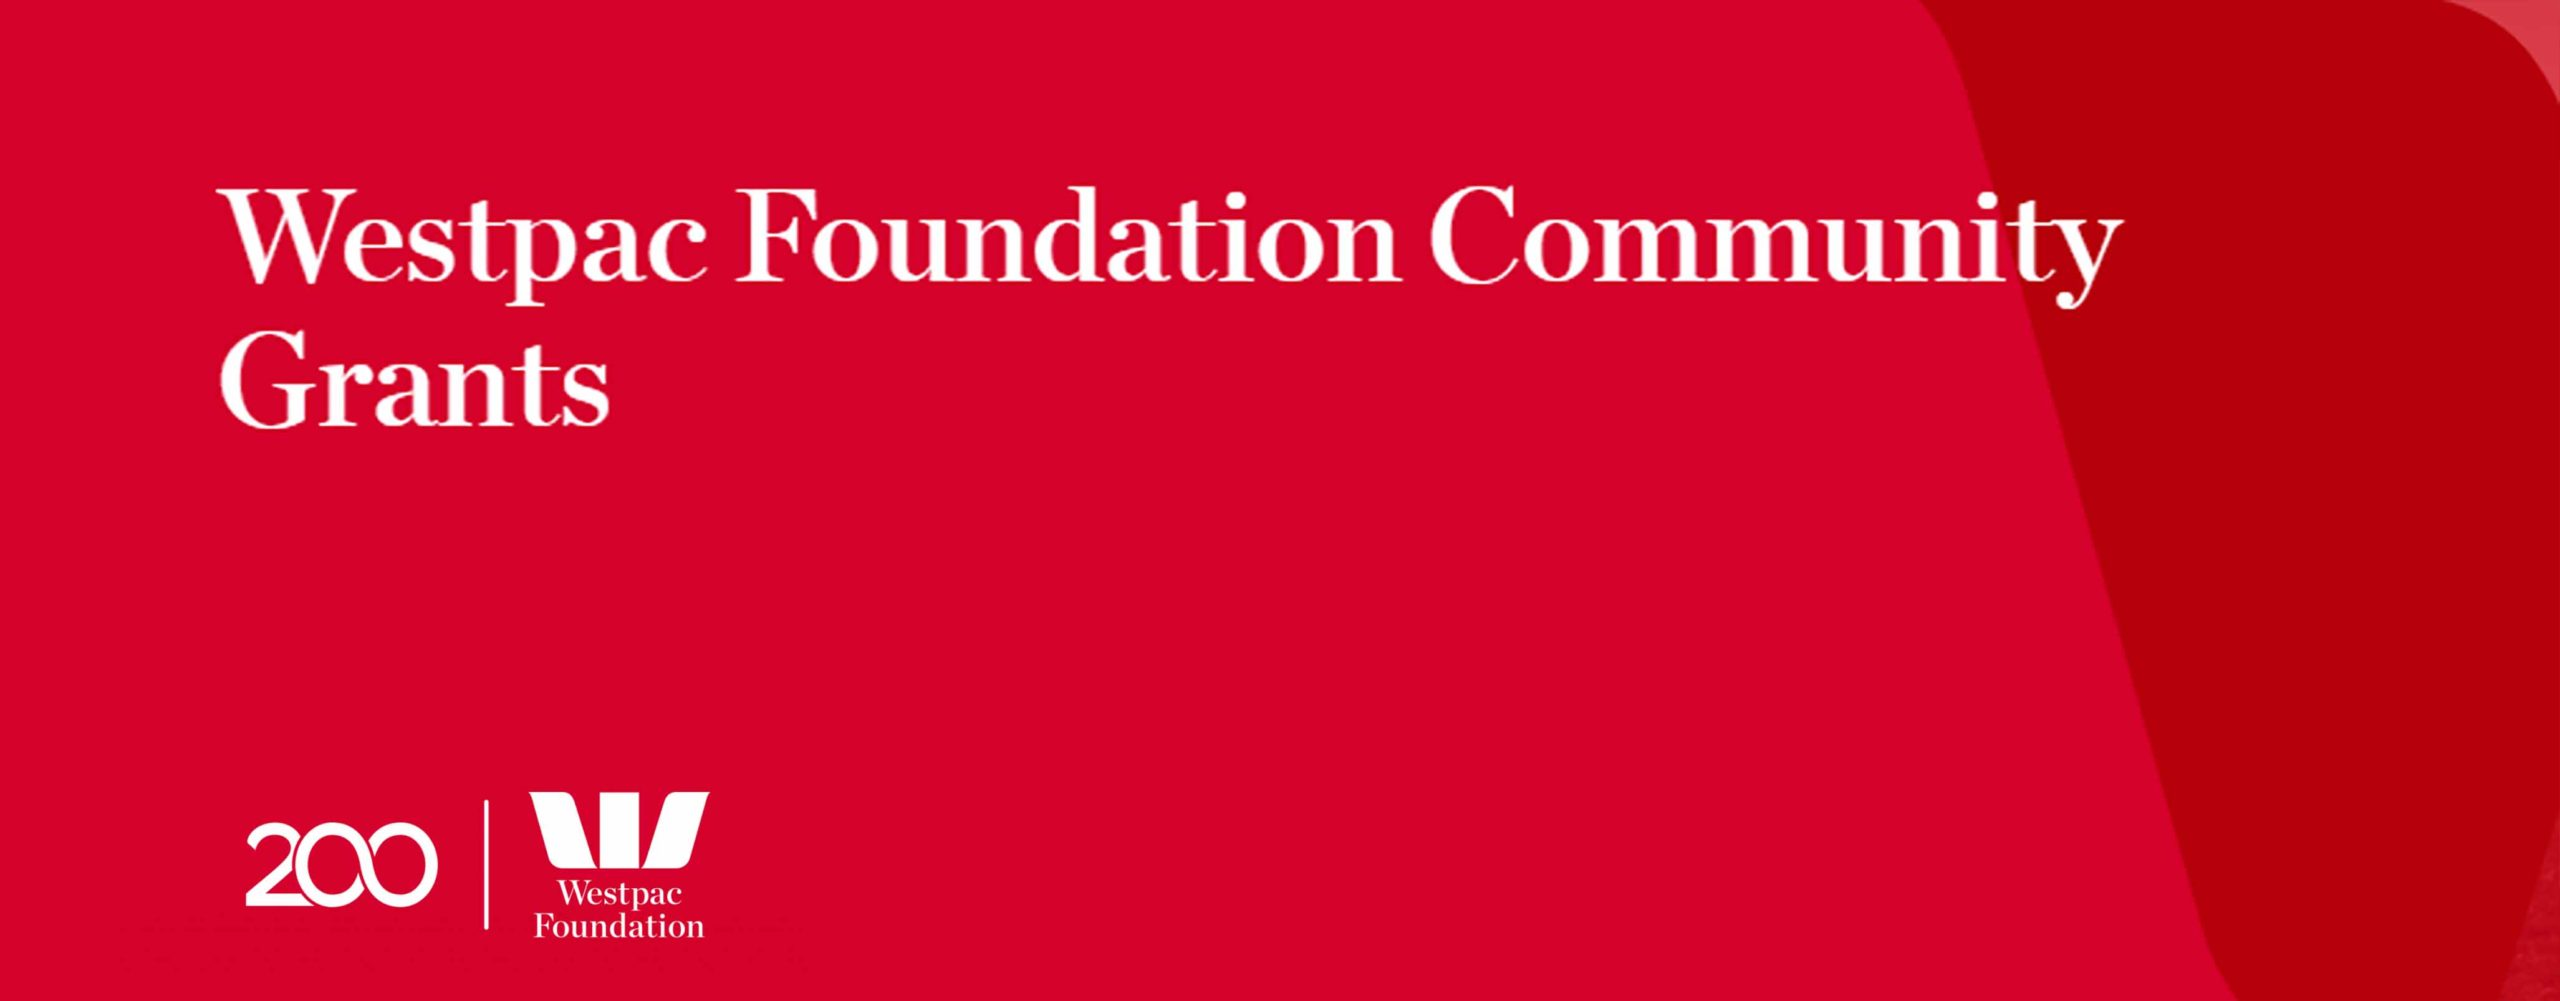 Red background. text reads Westpac fgoundation community grants. Westpac Bank logo at the bottom of graphic